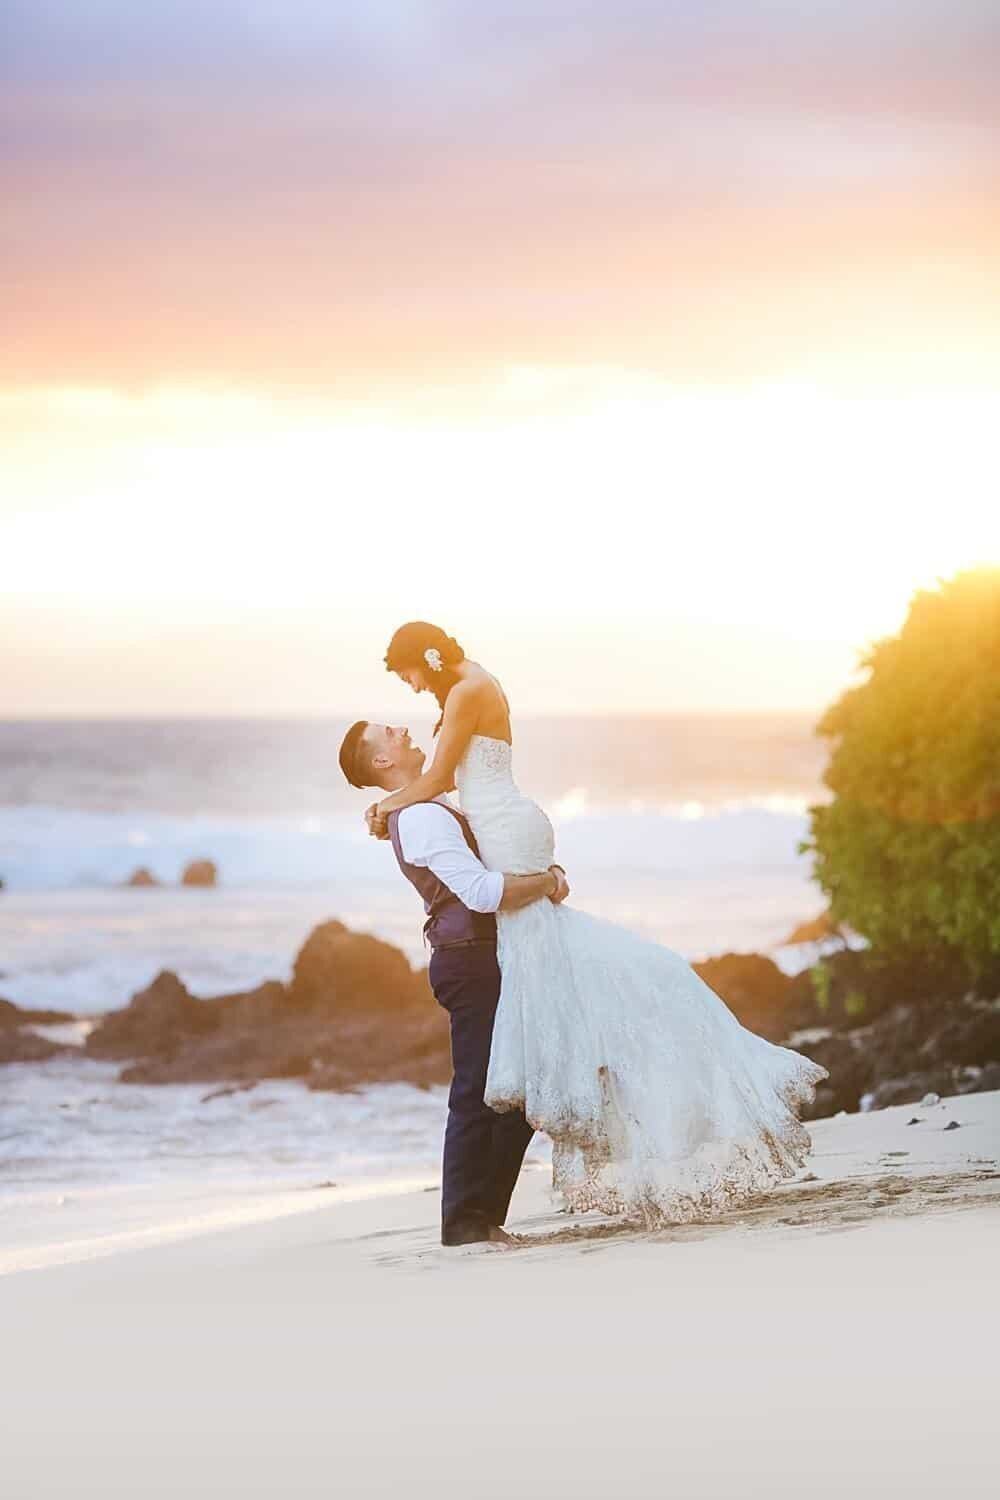 Groom lifting bride in the air after their Maui elopement